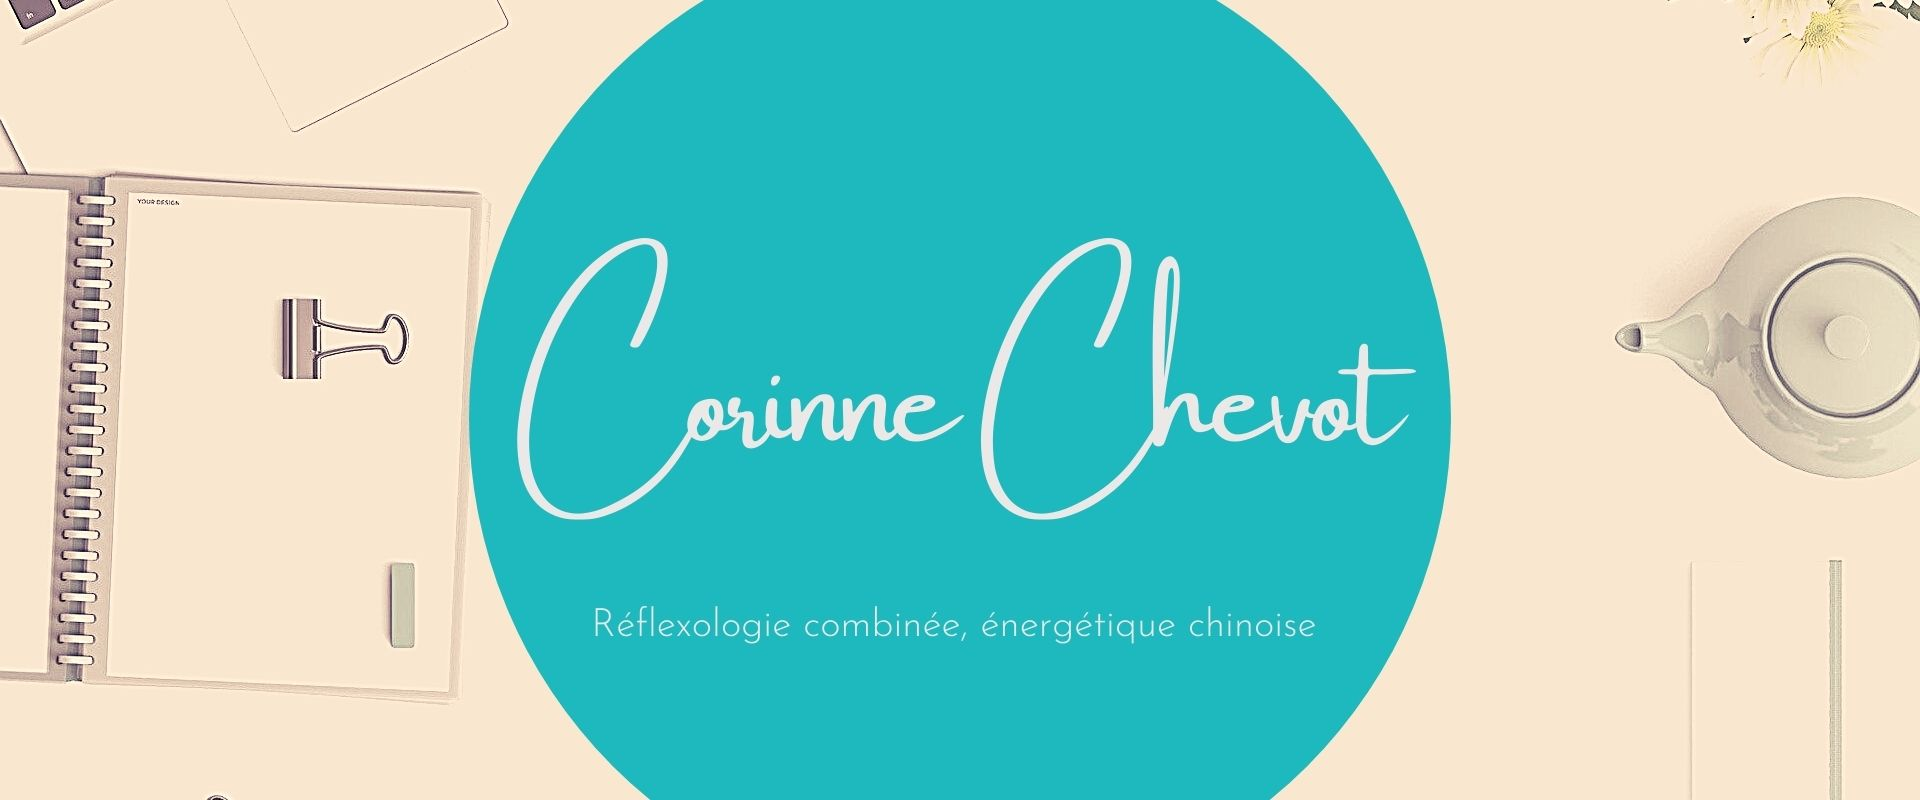 Le Blog de Corinne Chevot